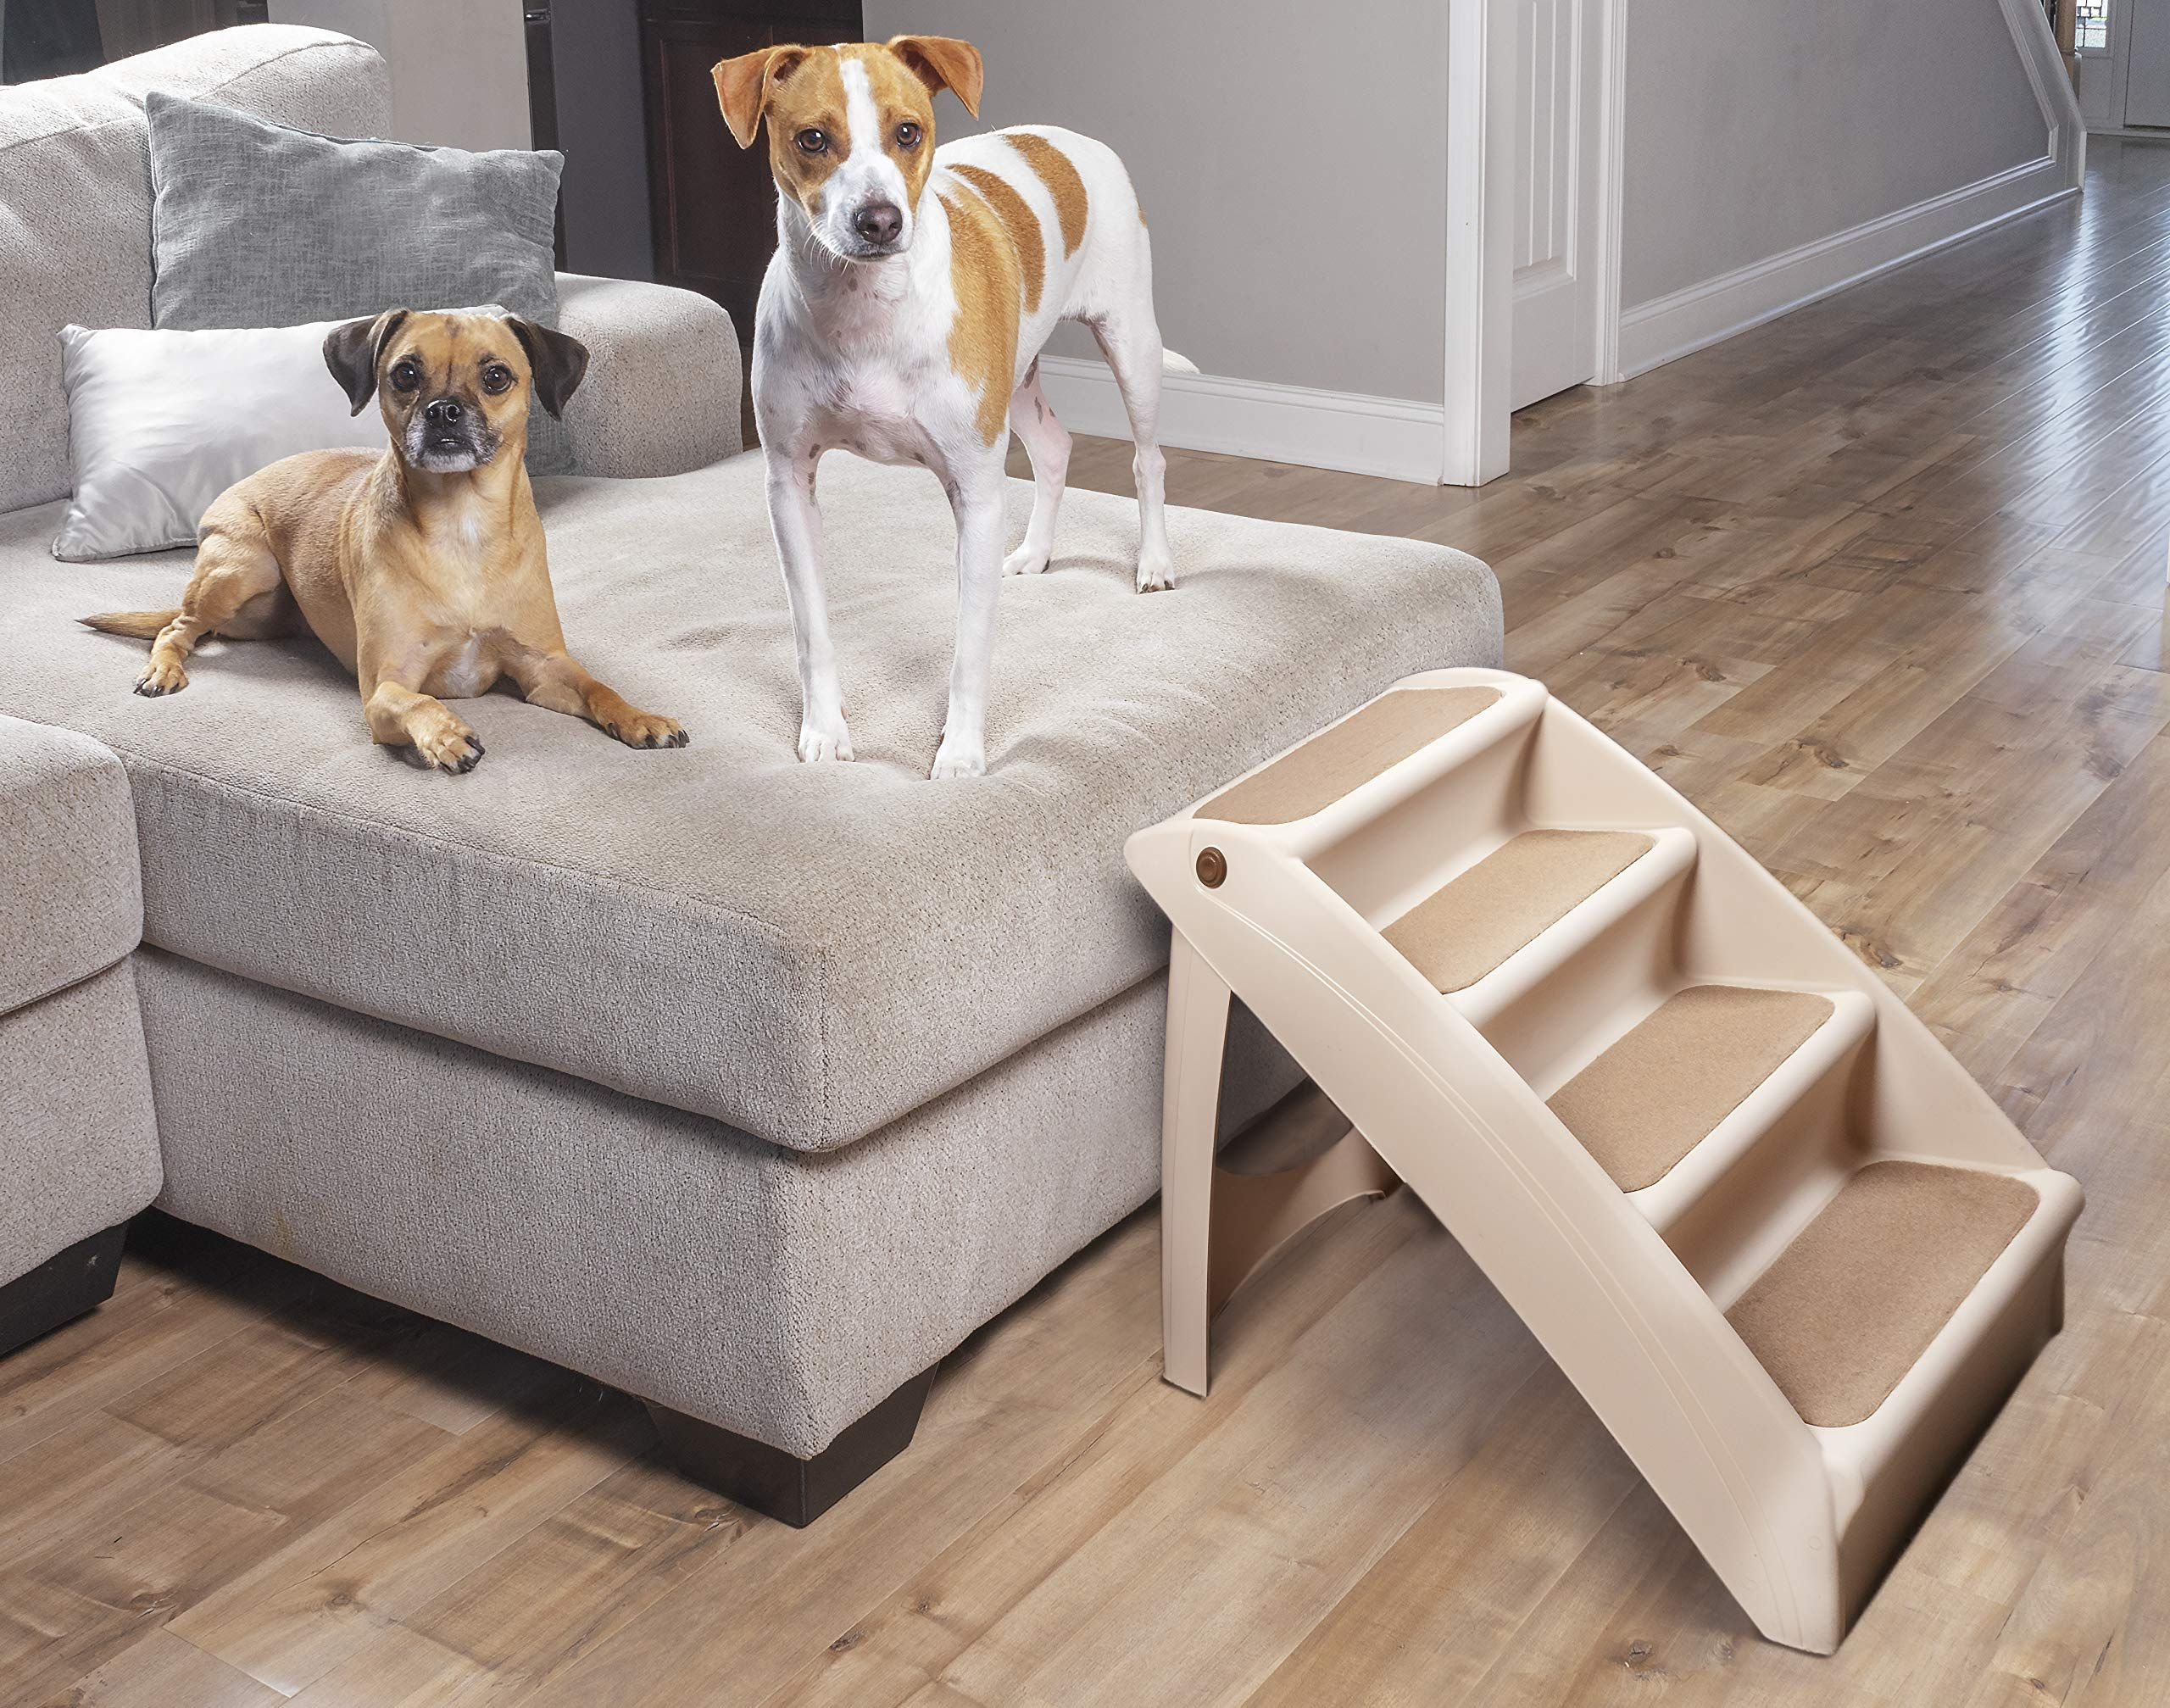 Furniture For Older Dogs Dog Stairs Pet Stairs Dog Steps